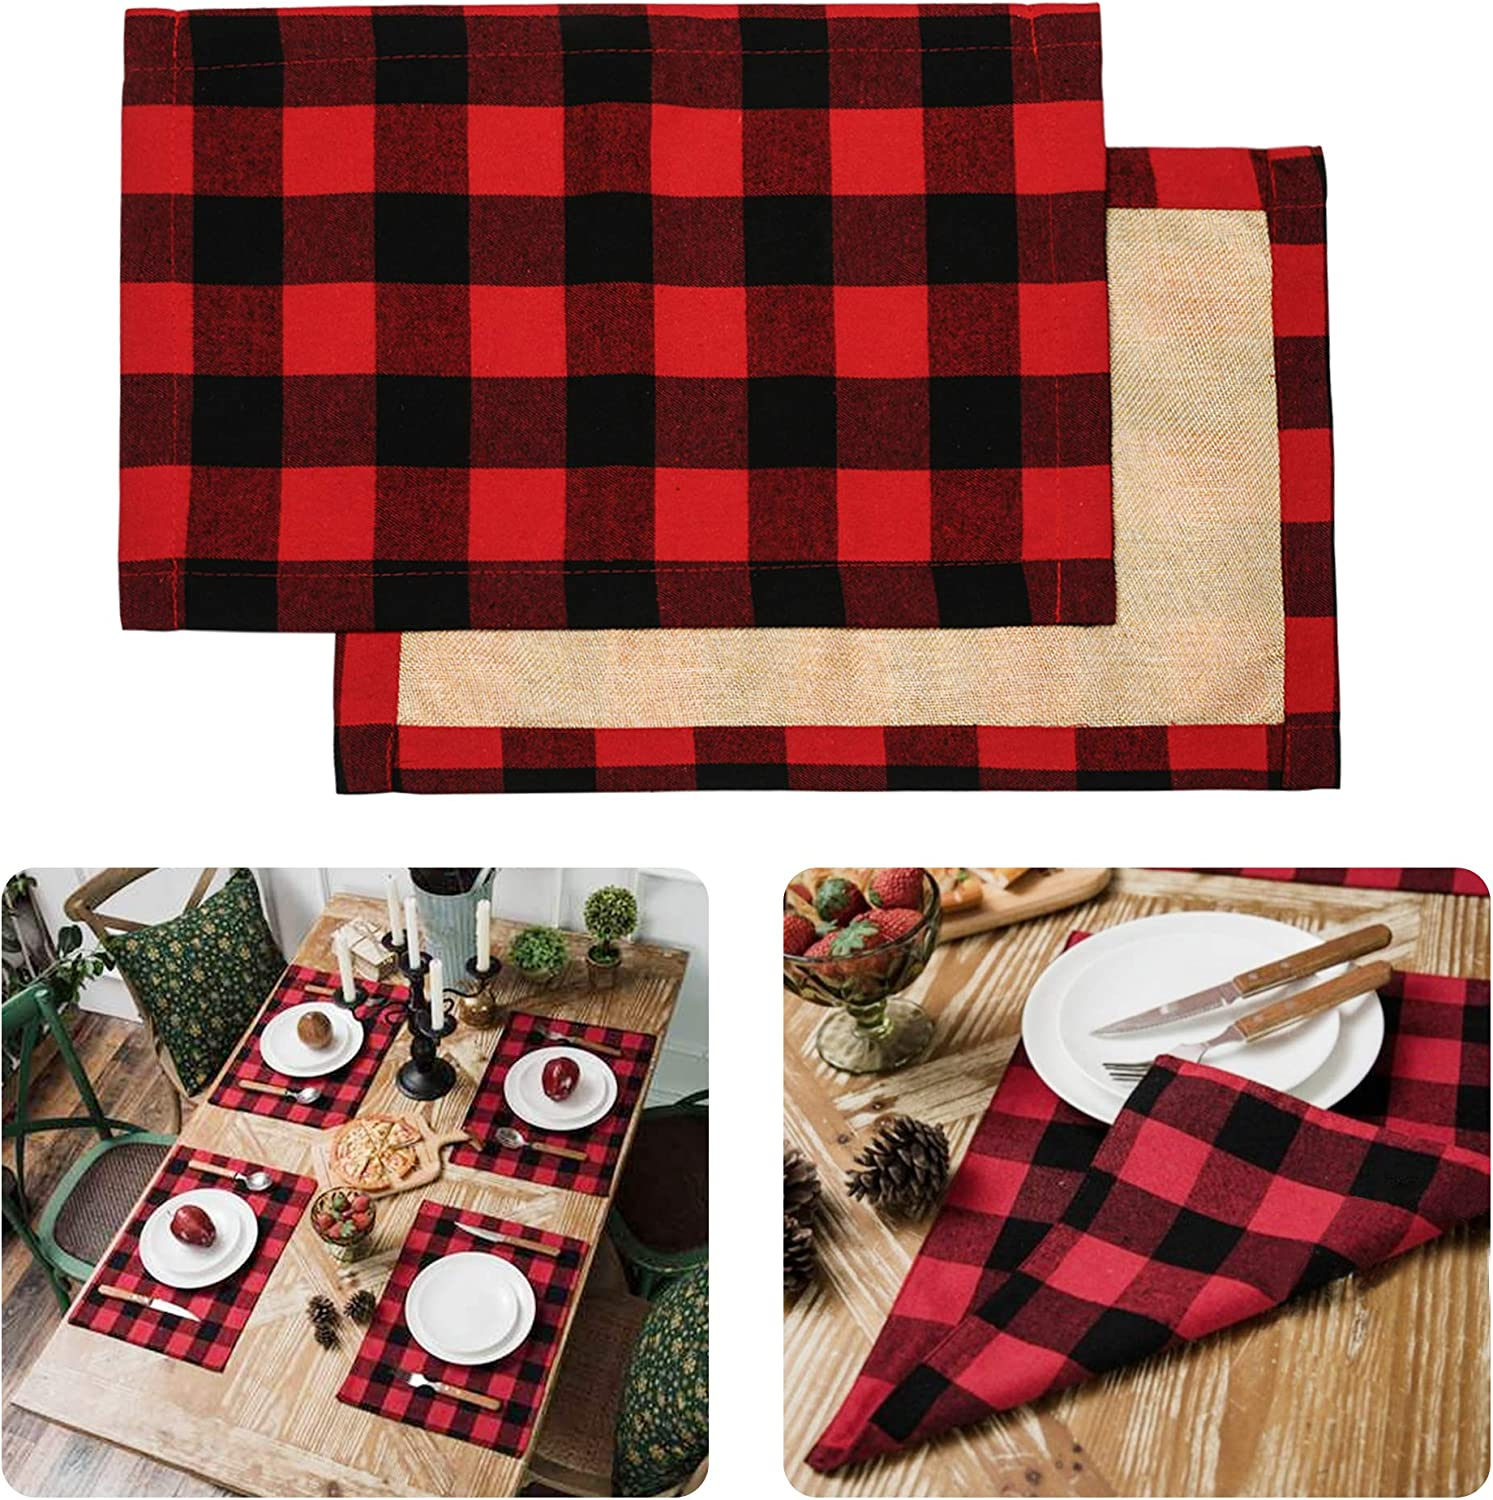 Christmas Placemats For Dining Table Red Black Buffalo Check Placemats Set Of 6 Plaid Placemats Set Farmhouse Christmas Decorations Kitchen Burlap 6 Pcs Fall HolidayTable Placemat For Dining 11x17 In: Home Improvement